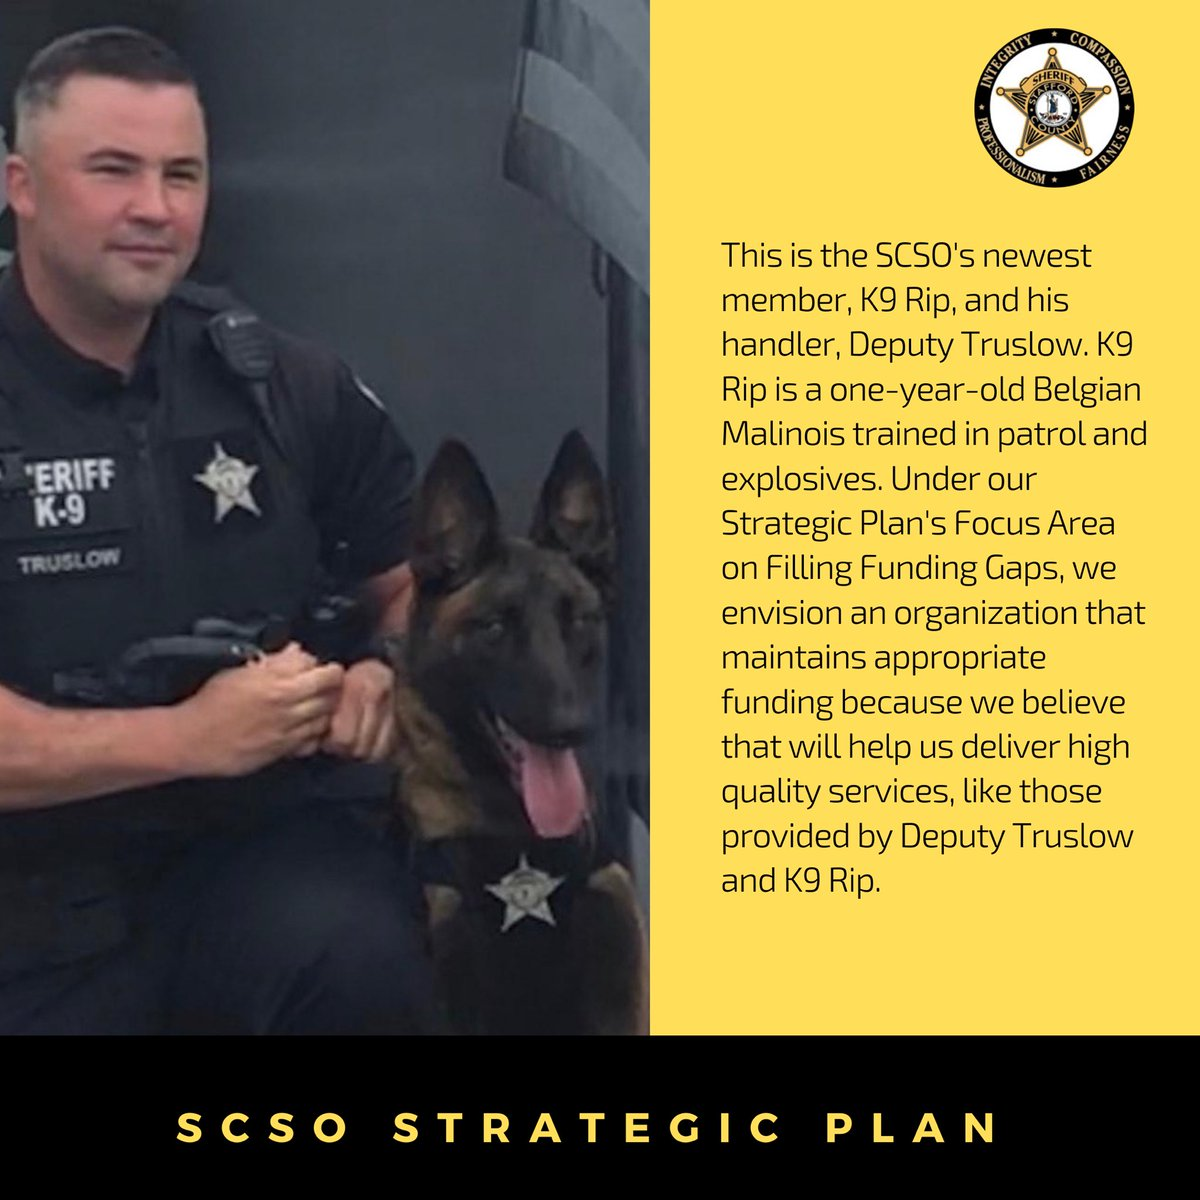 The call to public service is strong for our law enforcement officers. That's why making sure they have the best tools available to keep our community safe is a Focus Area in our Strategic Plan. Have a great Friday!